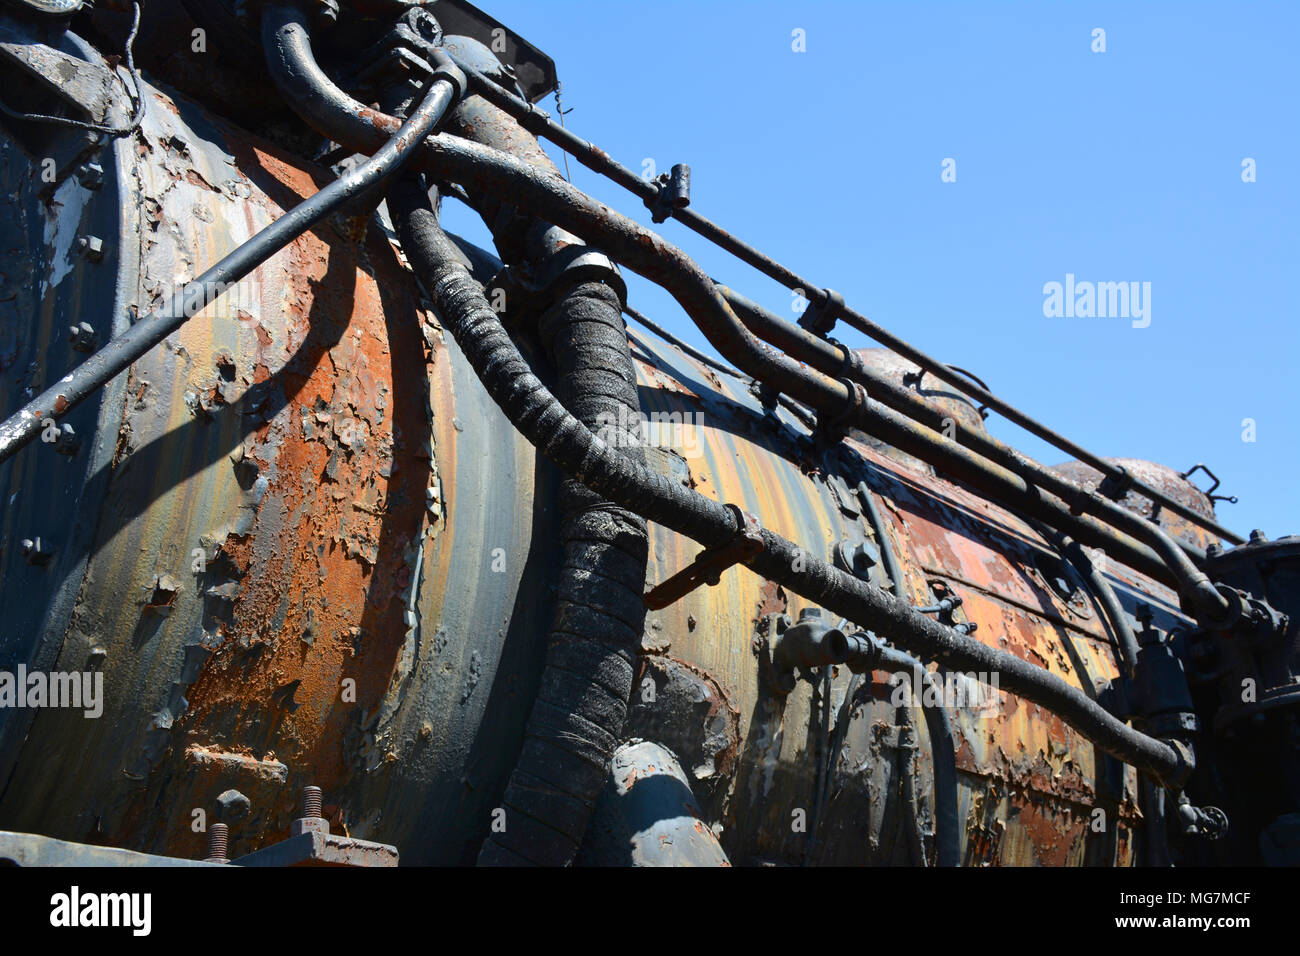 Detail of unrestored locomotive located at Steamtown National Historic Site located on 62.48 acres in downtownScranton, Pennsylvania Stock Photo